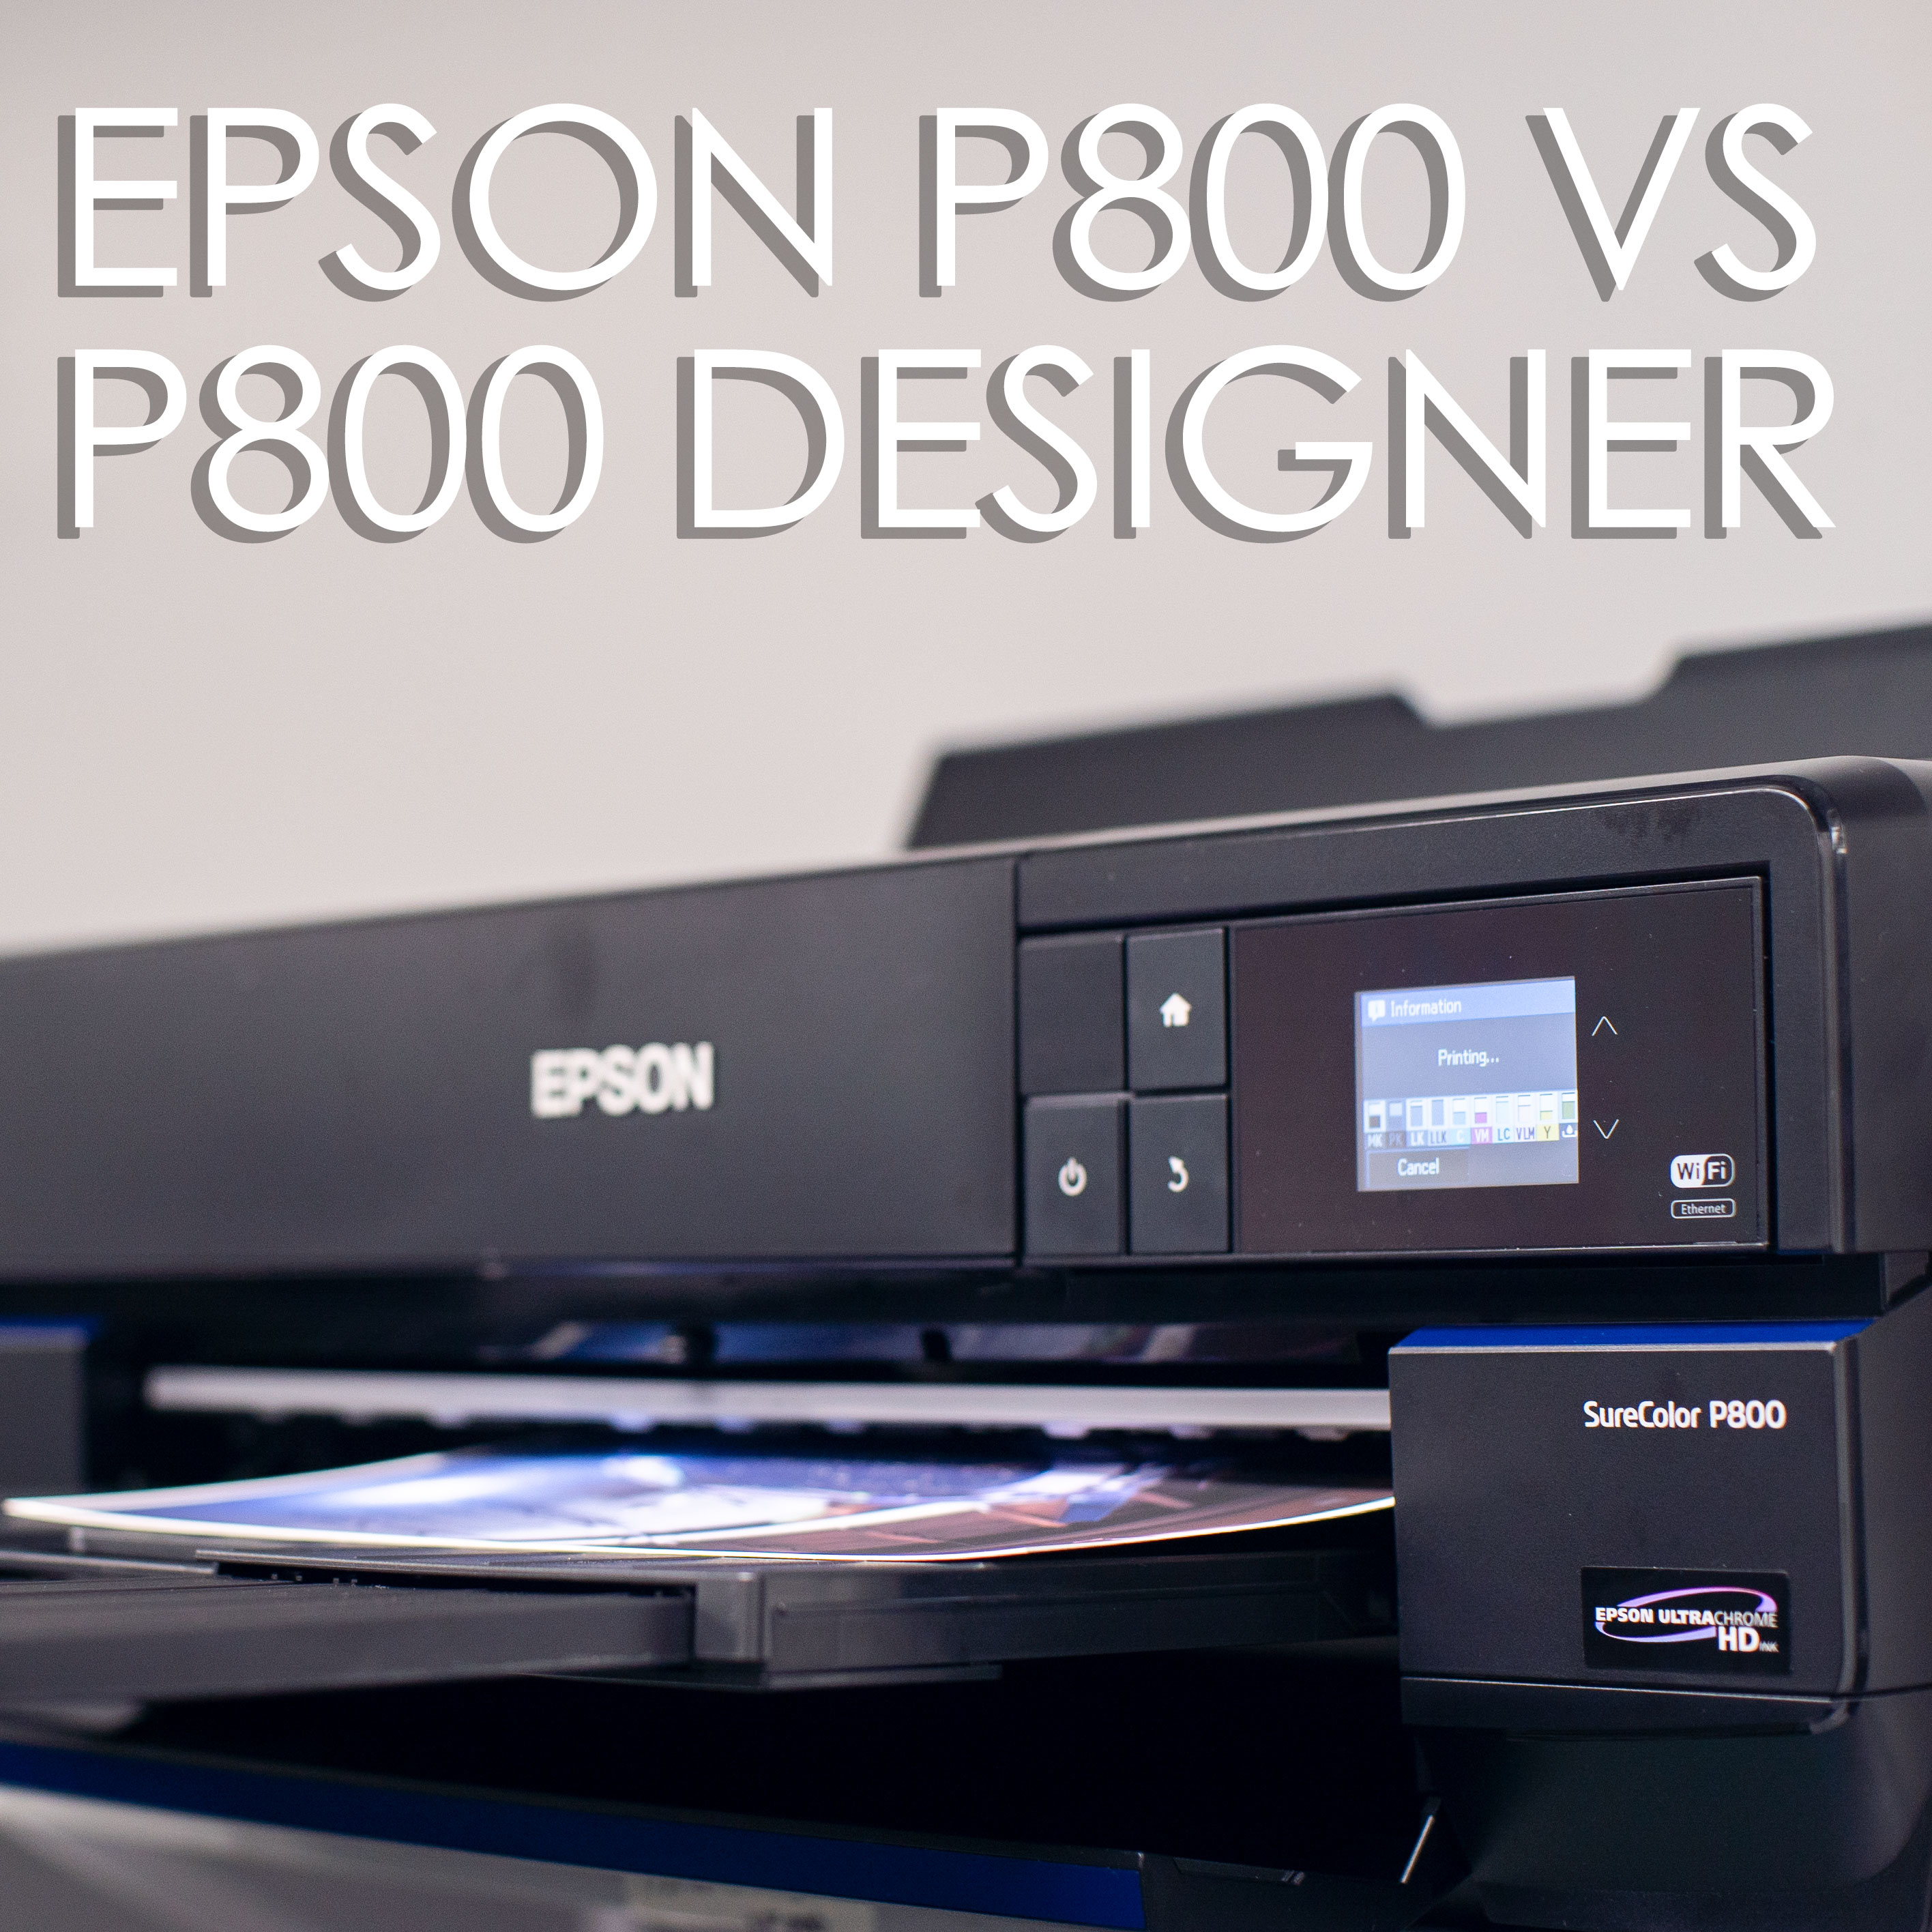 P800 vs P800 Designer Edition